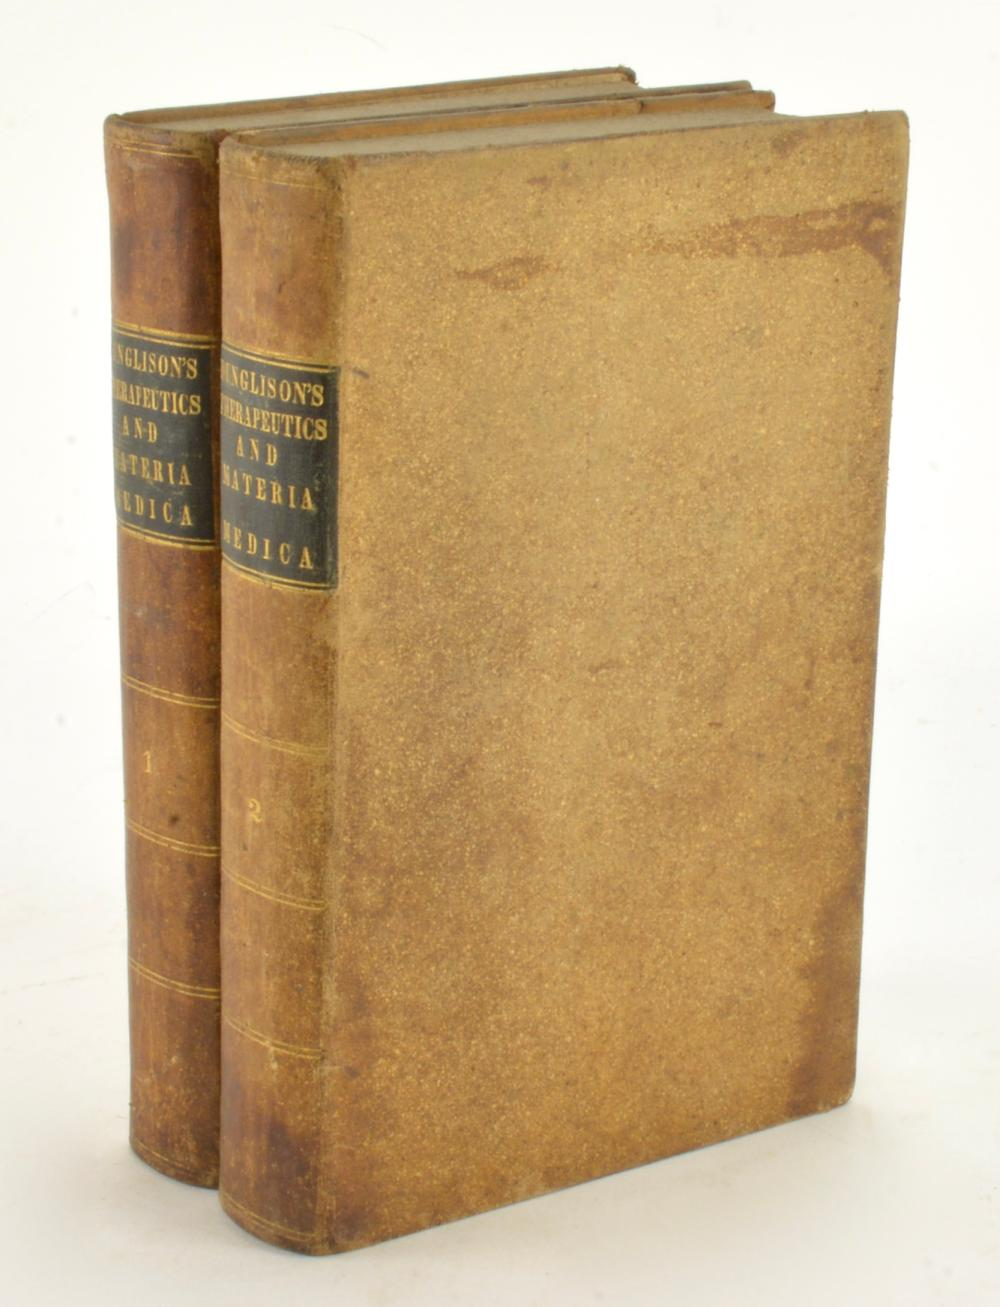 Dunglison's Therapeutics And Materia Medica 1843 Philadelphia 2 Vol Set